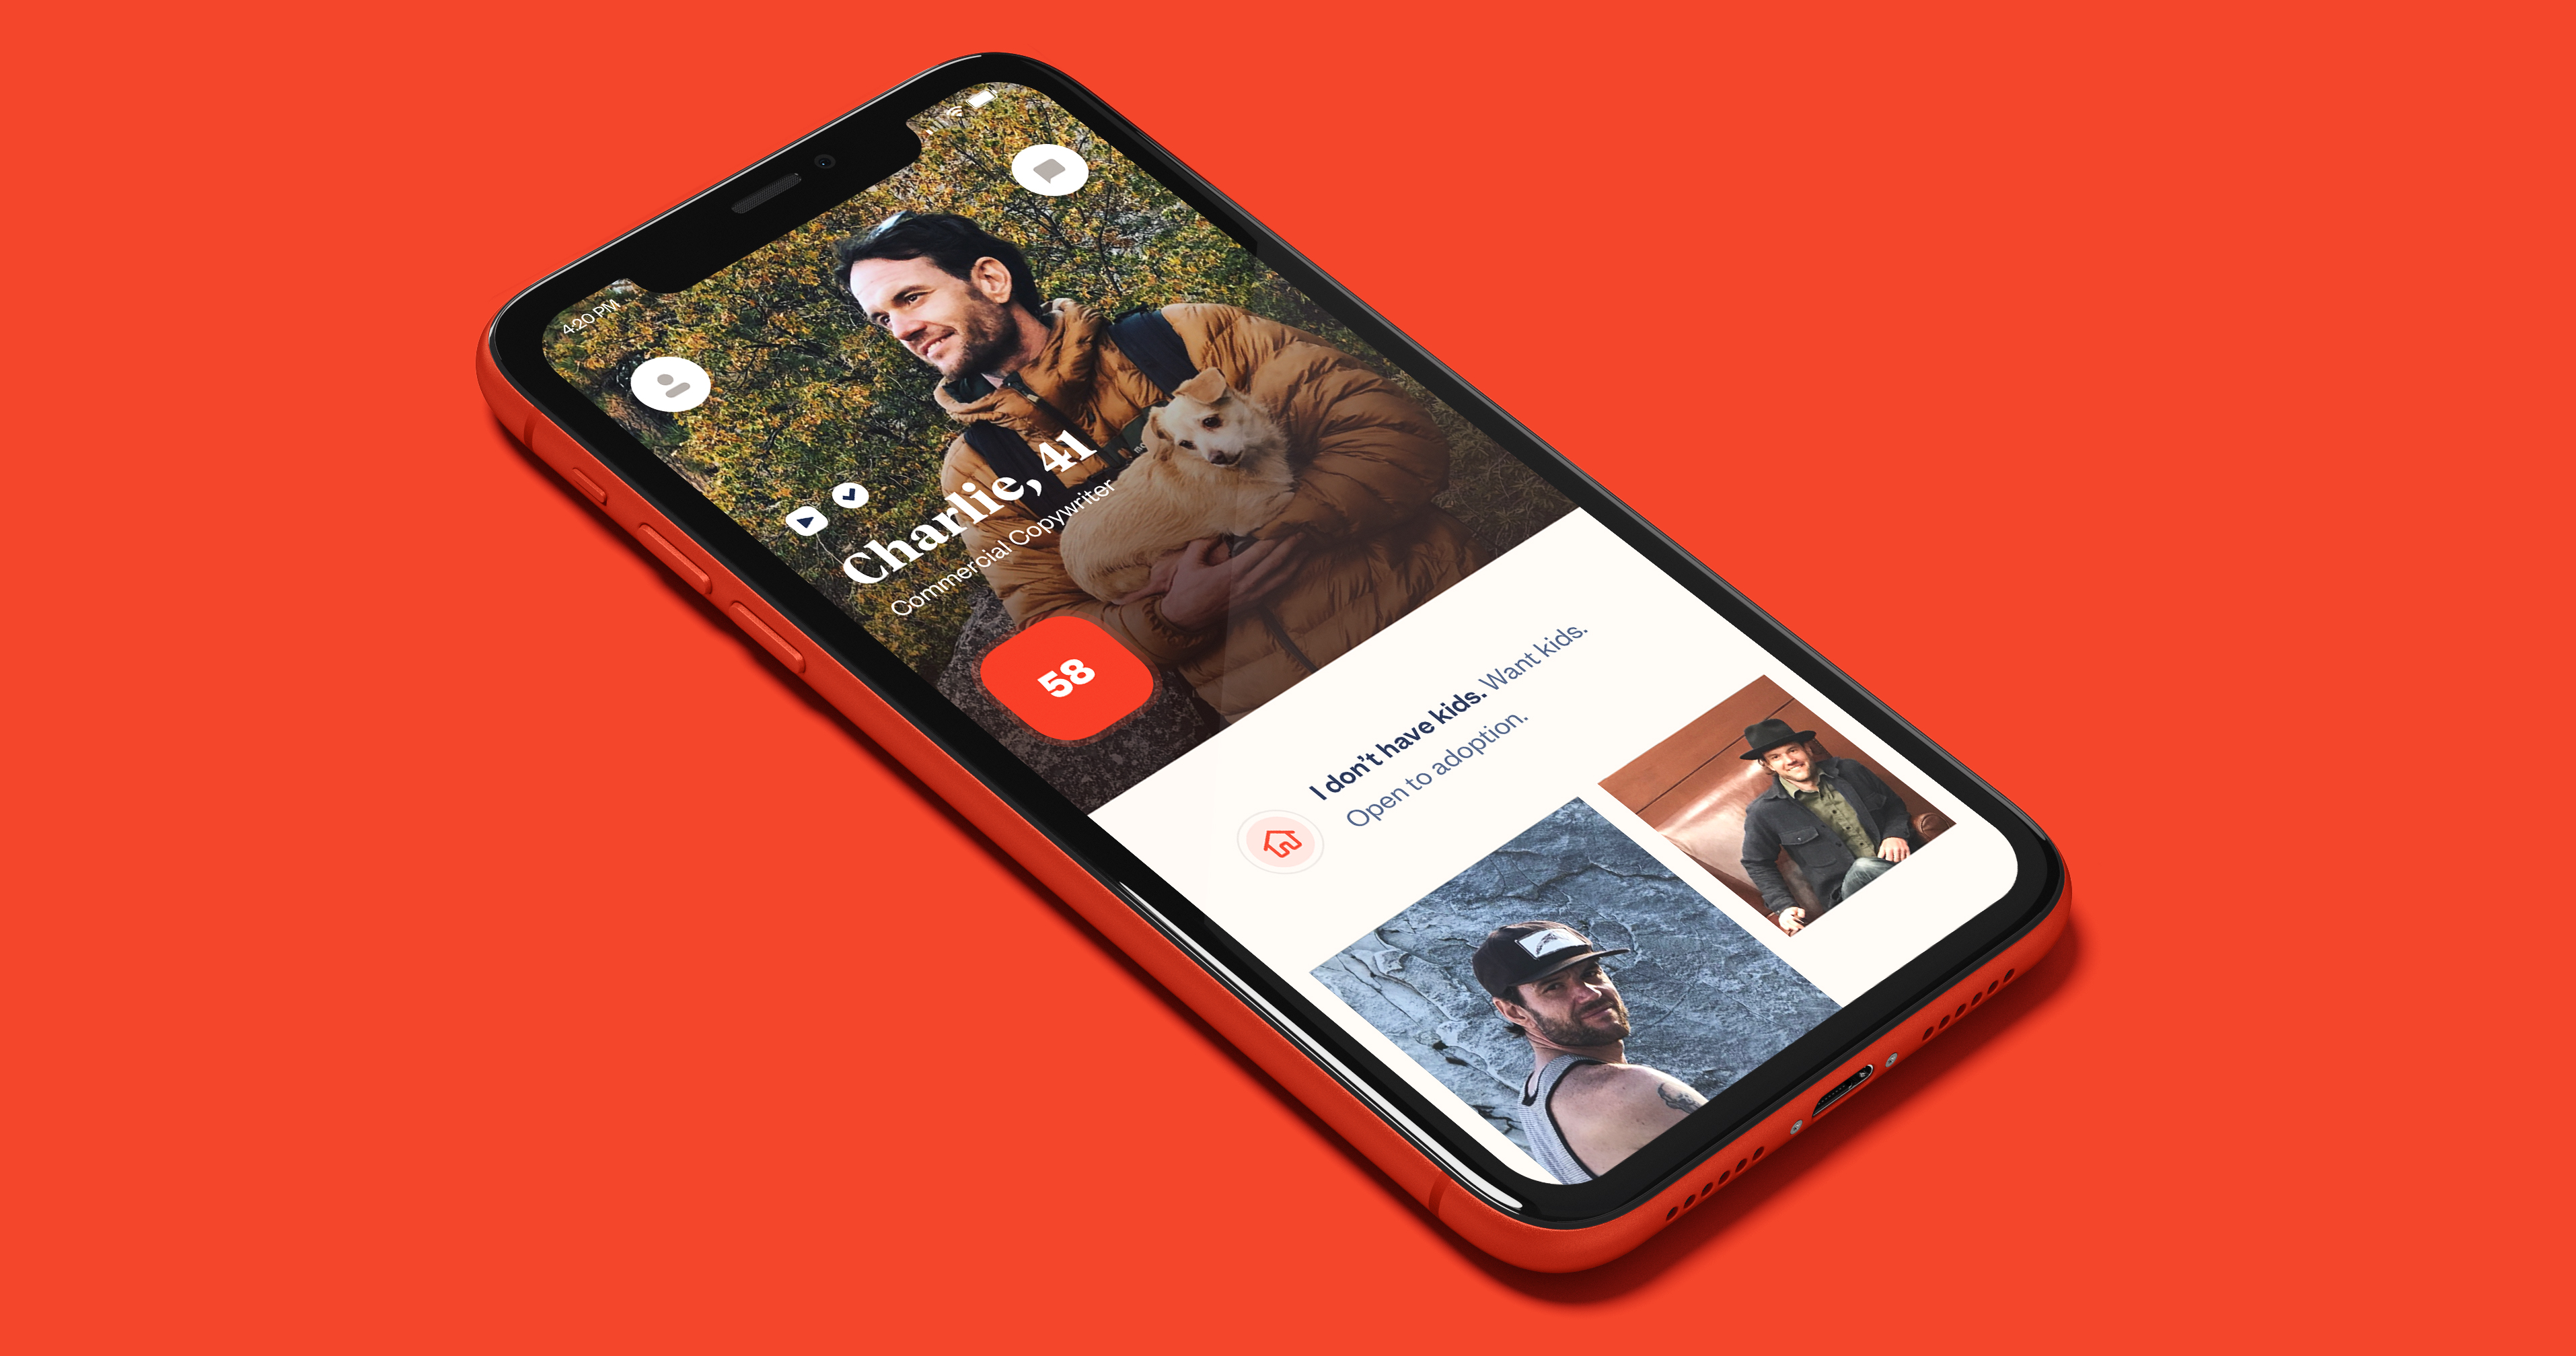 Meet the new dating app for parents and people who want kids thumbnail